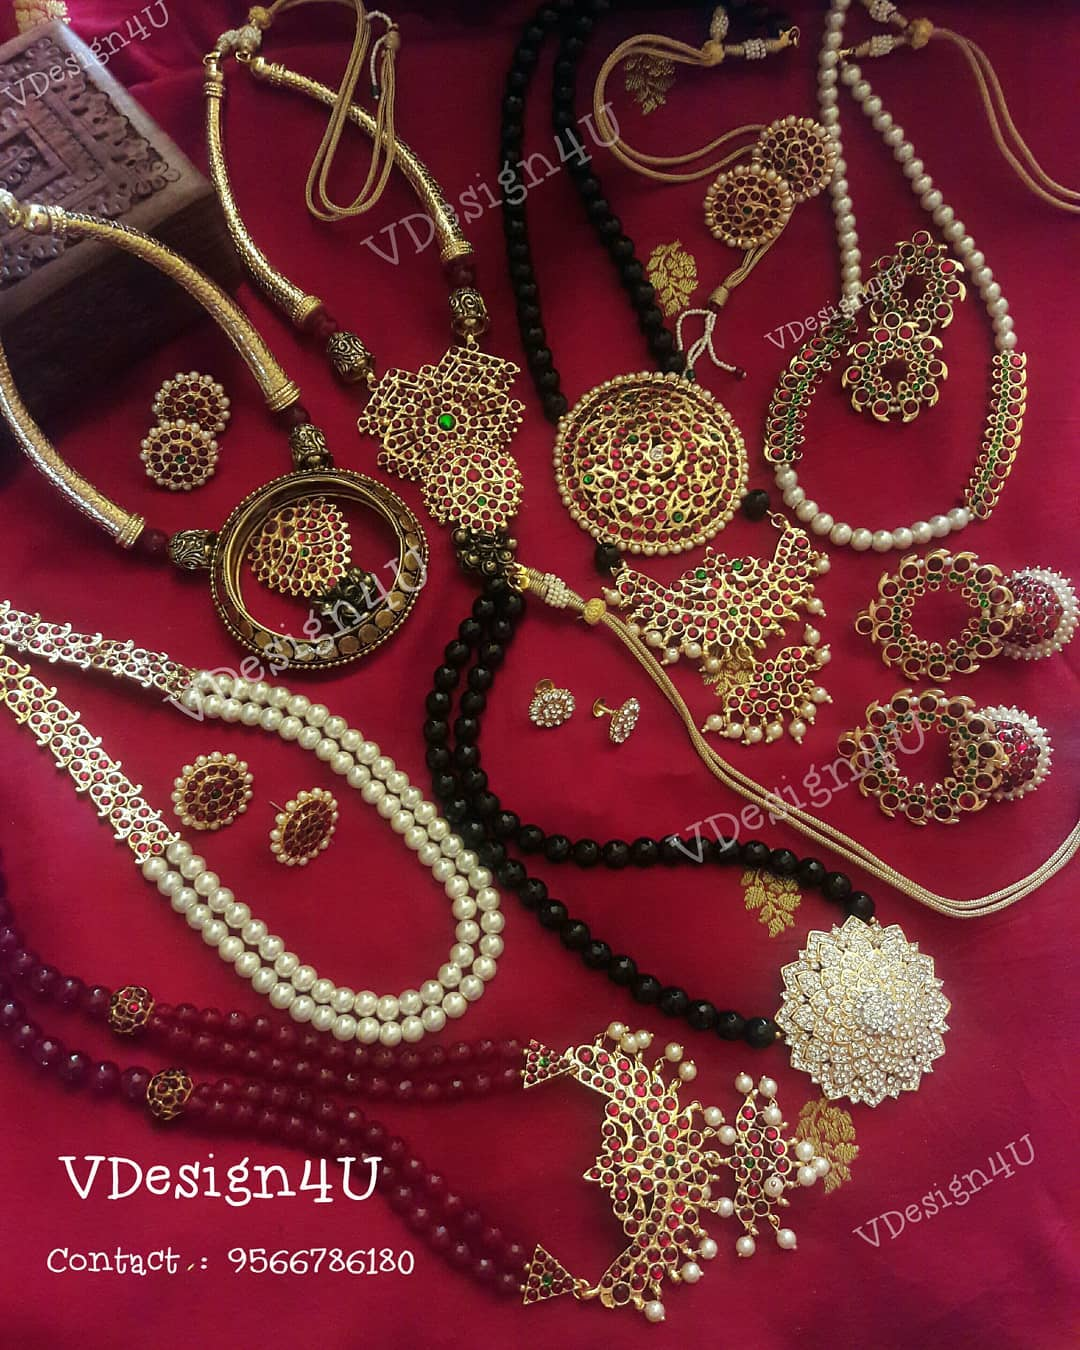 Kemp Necklace Collections From Vdesign4u